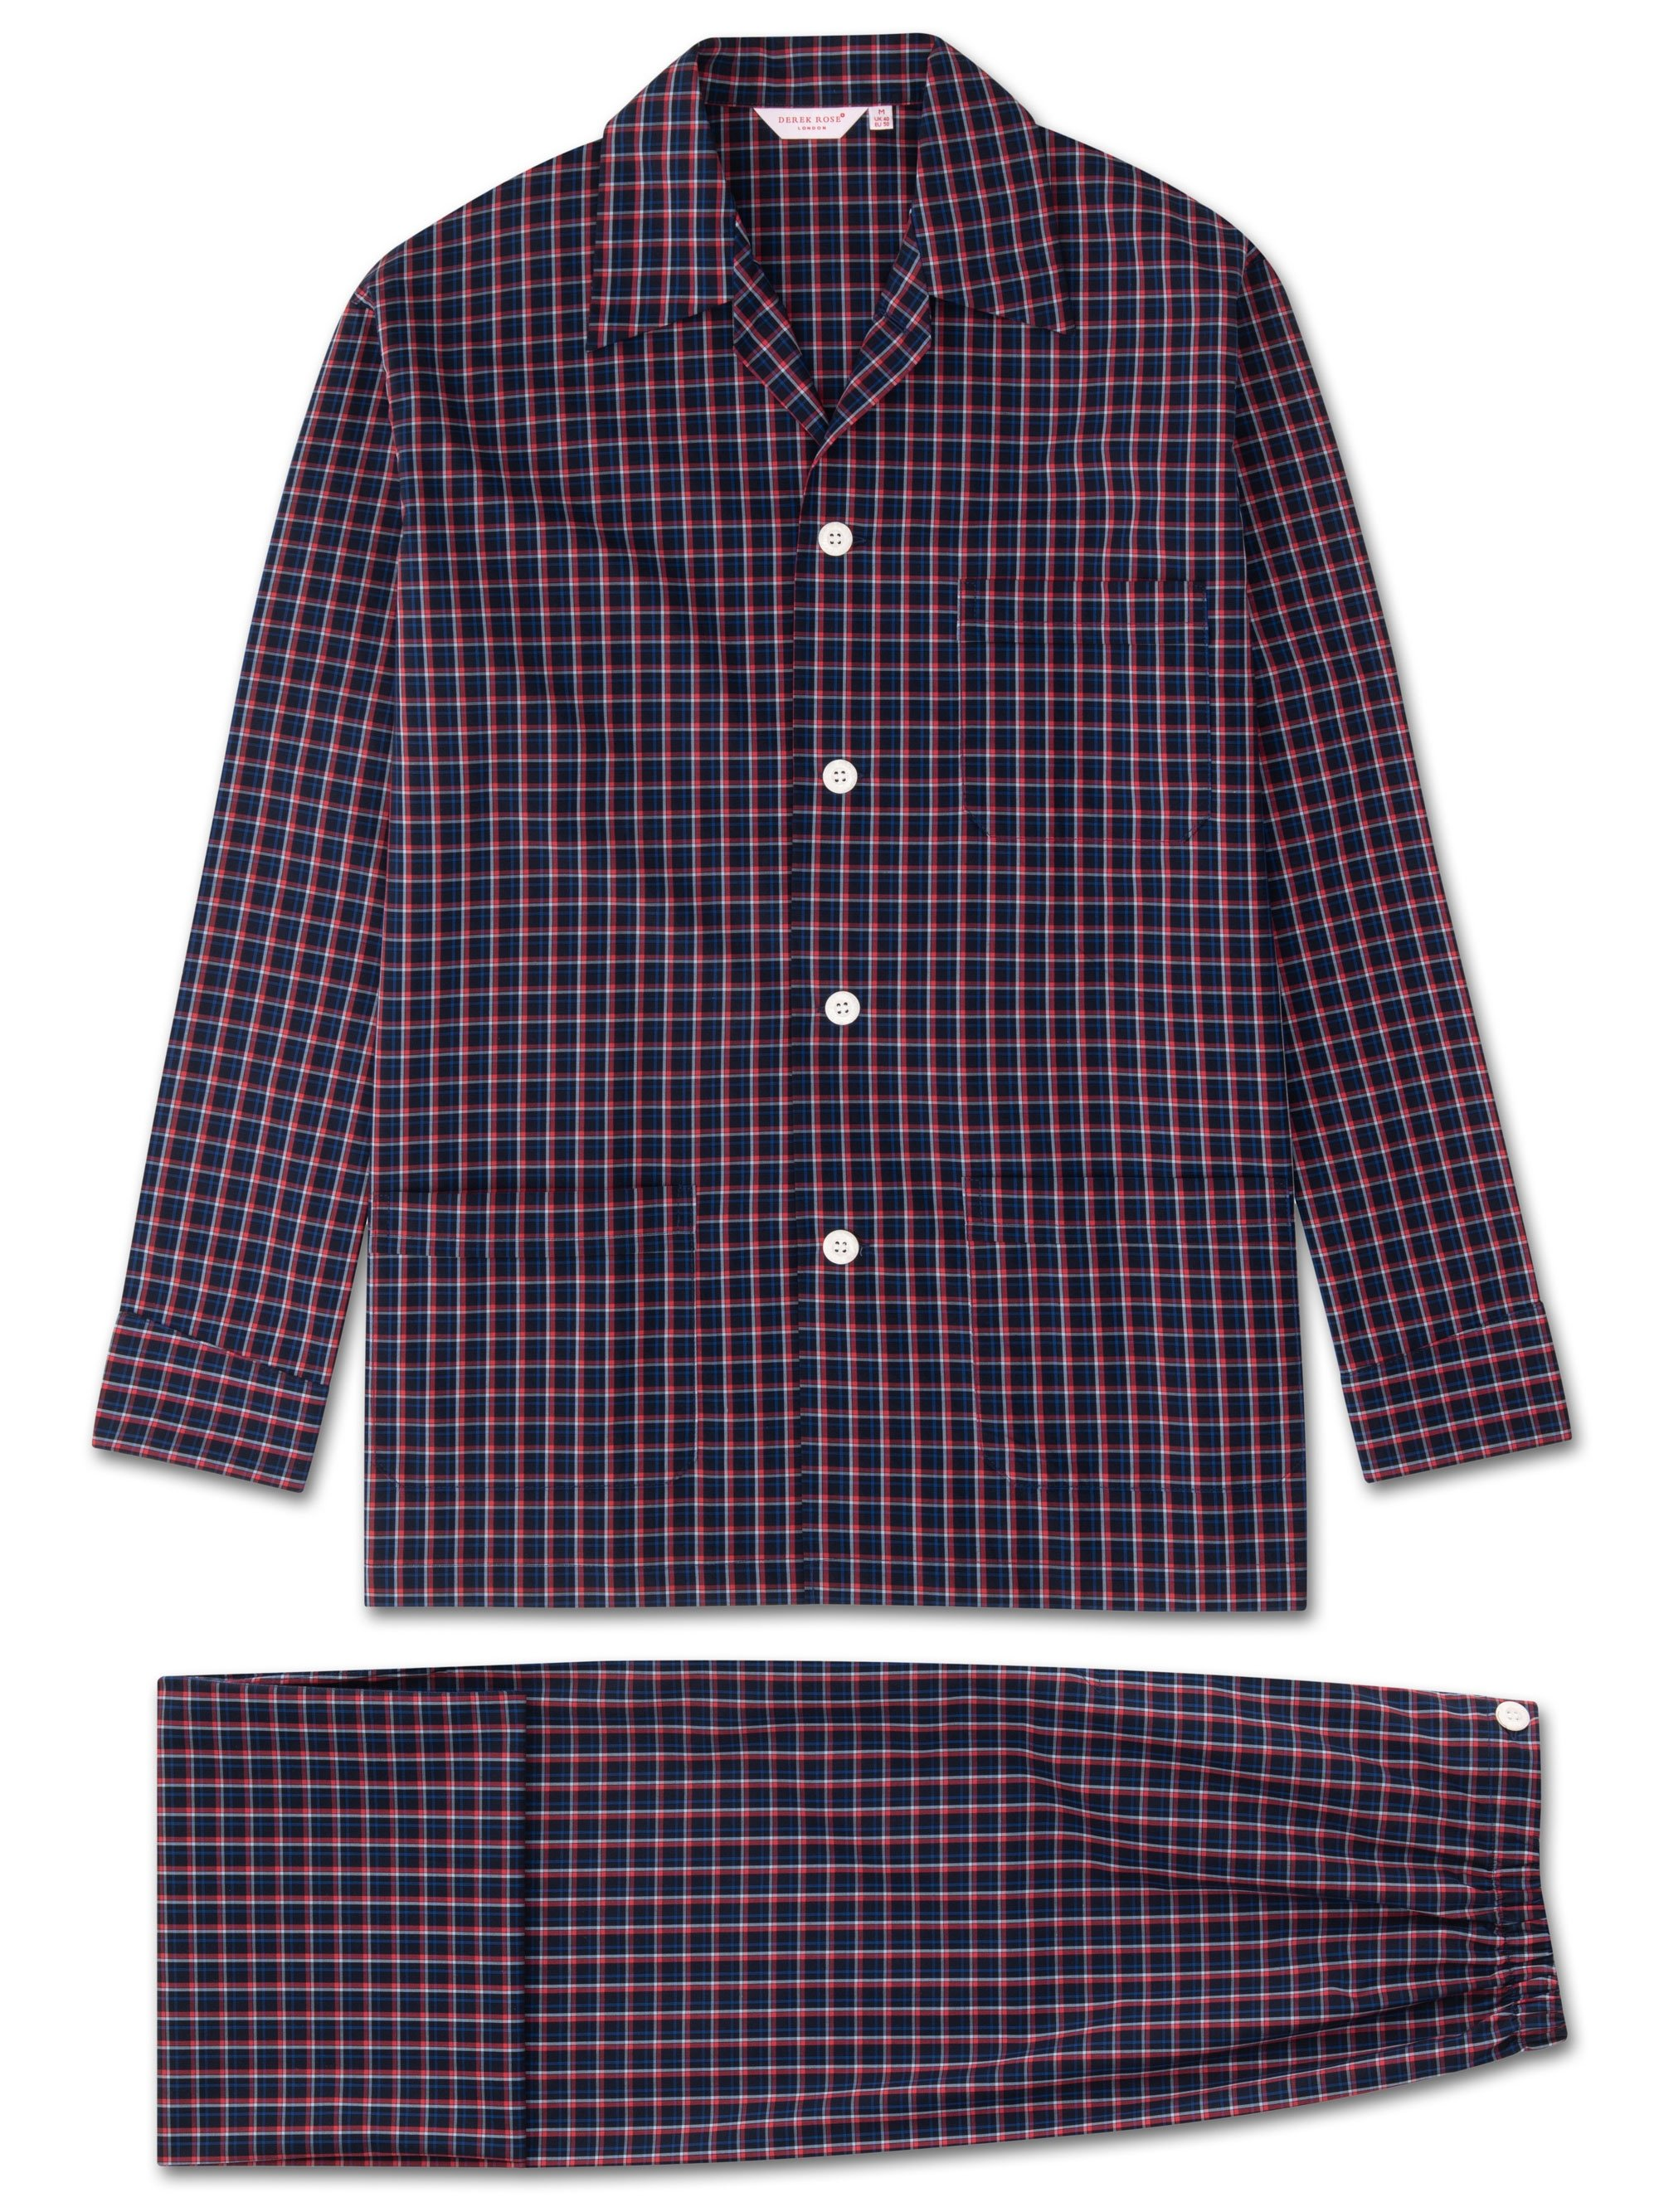 Men's Classic Fit Pyjamas Barker 22 Cotton Check Navy